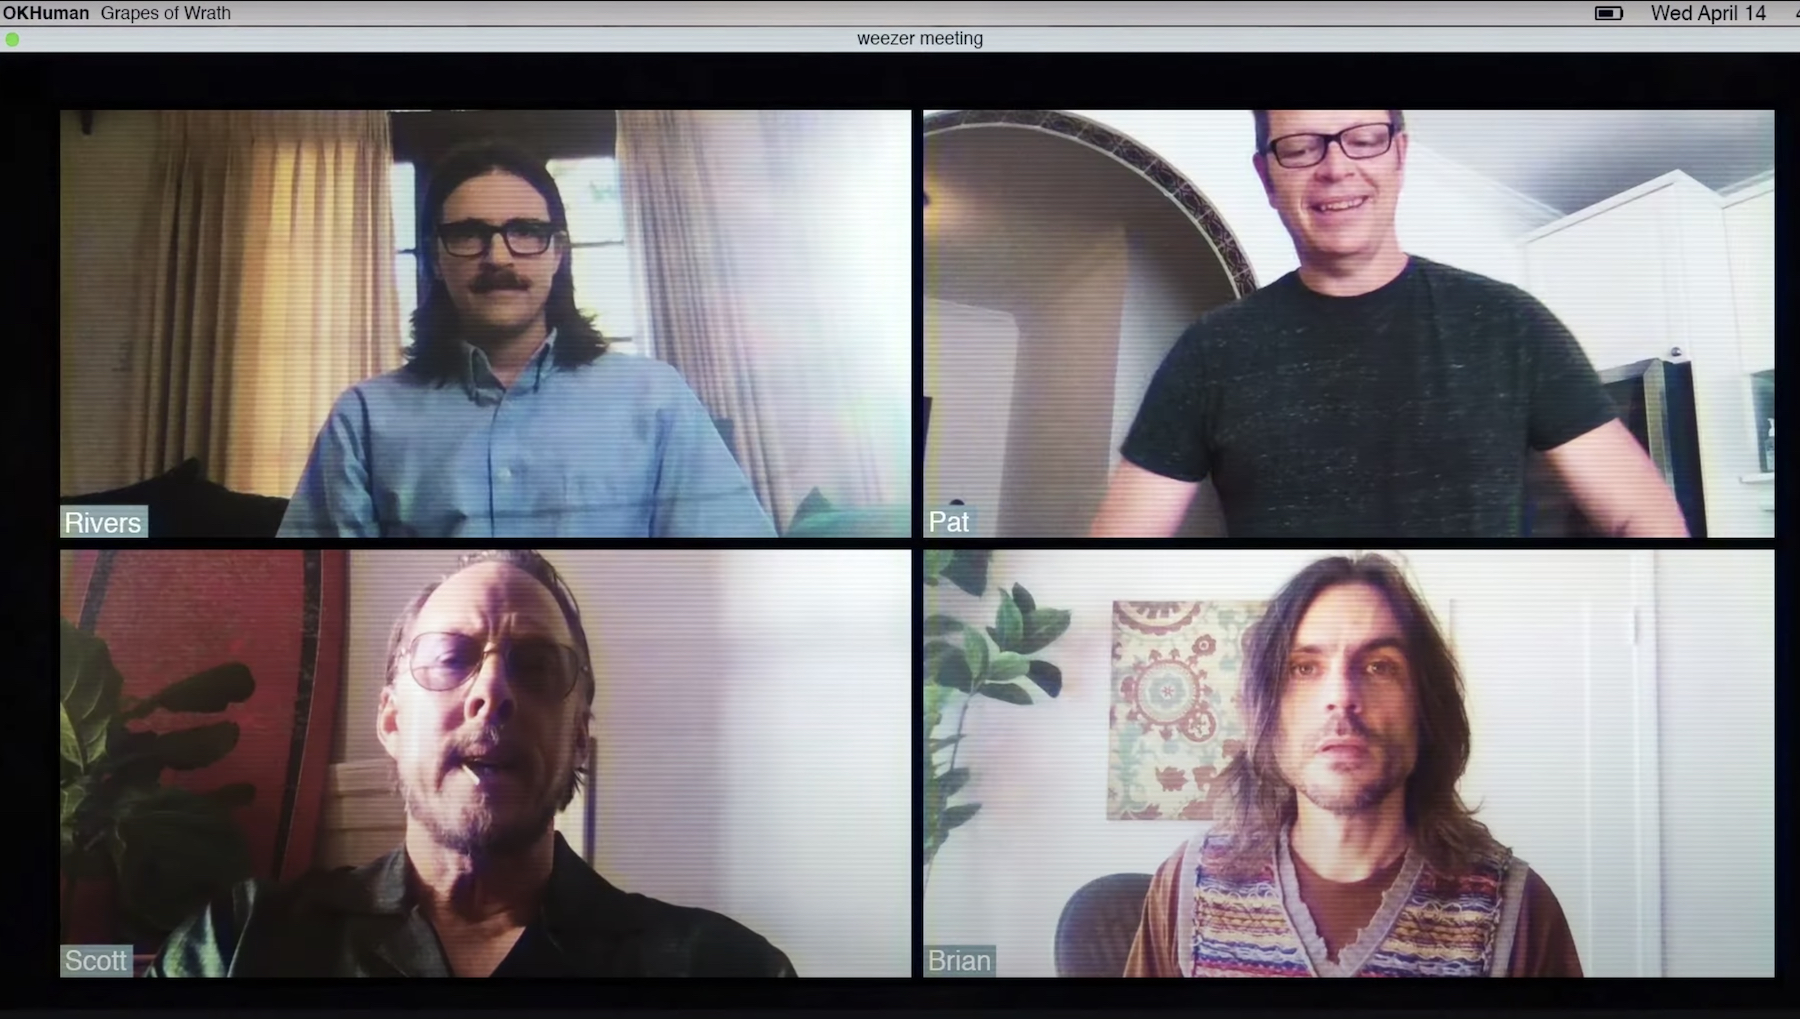 Weezer Play Hooky in New 'Grapes of Wrath' Video